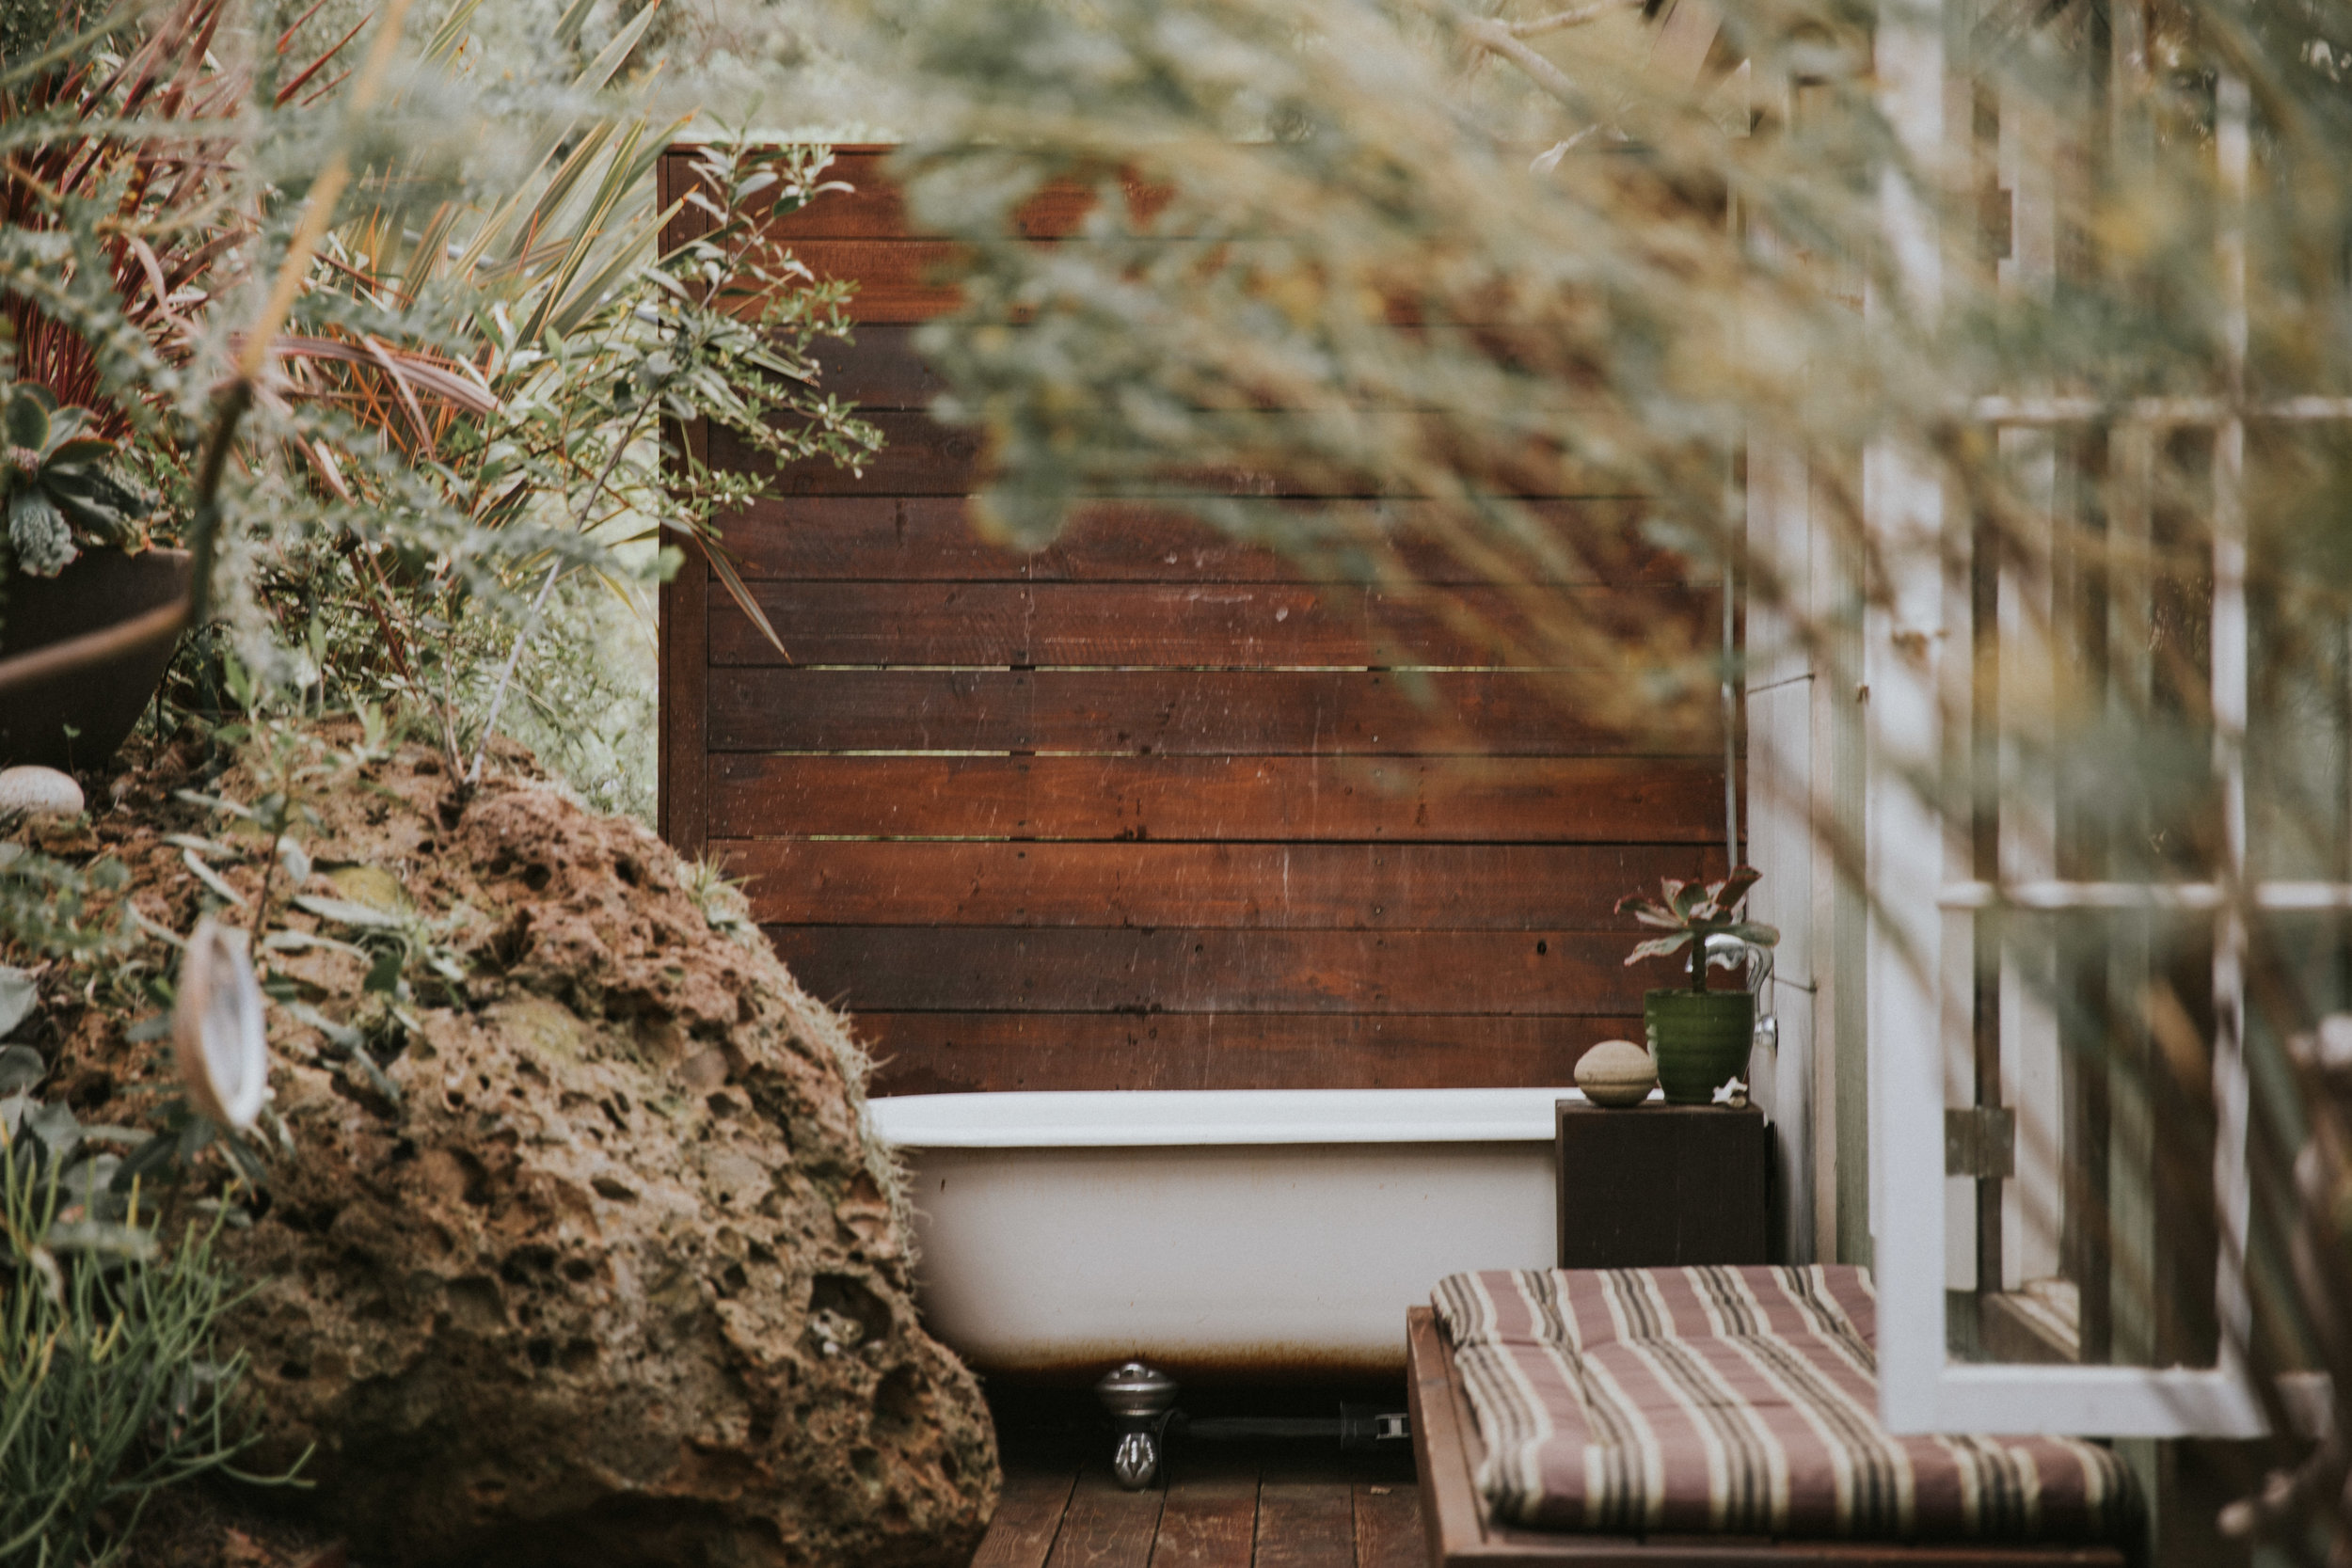 Bohemian Outdoor Tub in Malibu